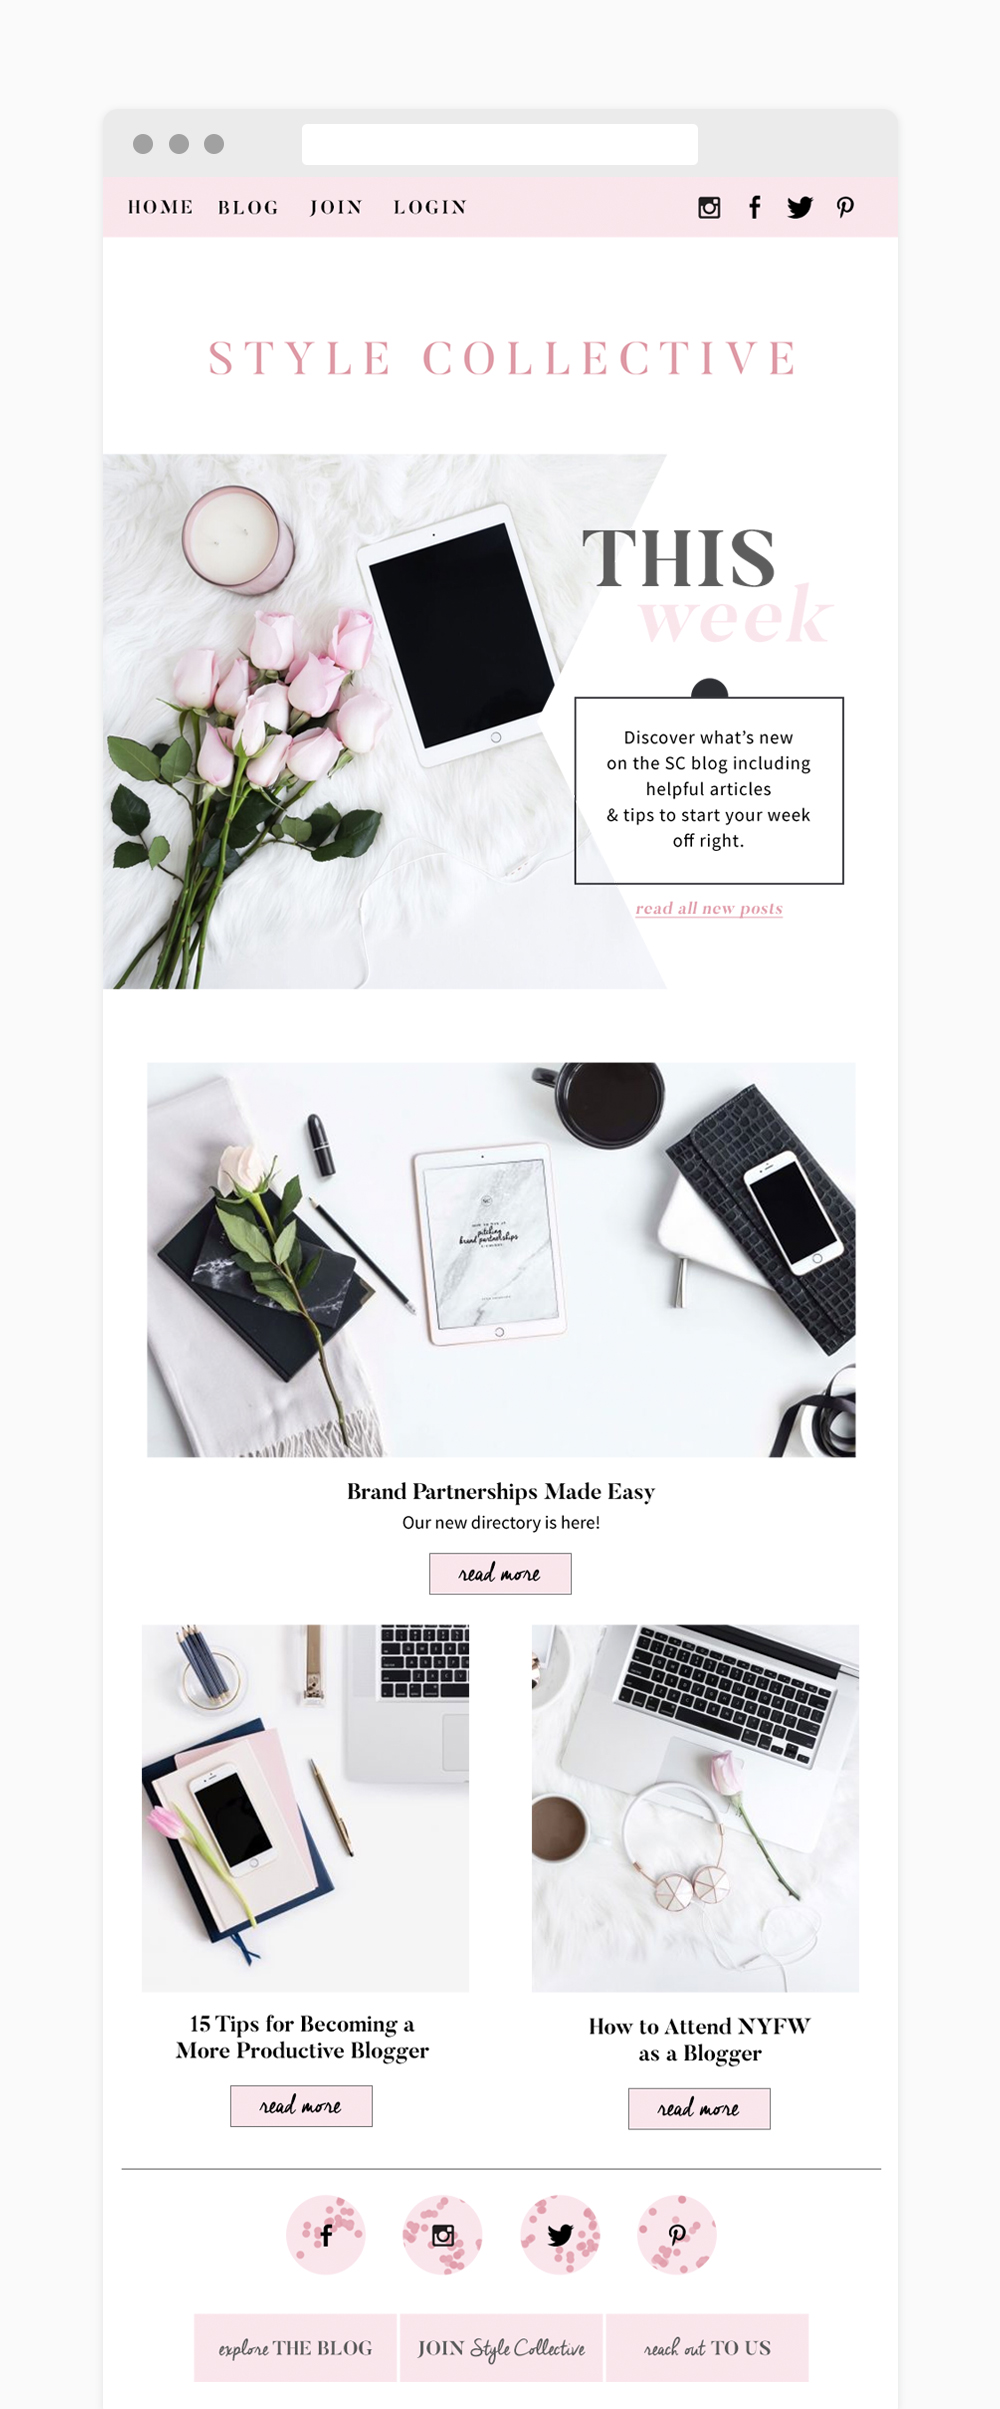 Stylish fashion and blogger newsletter design | Reux Design Co.